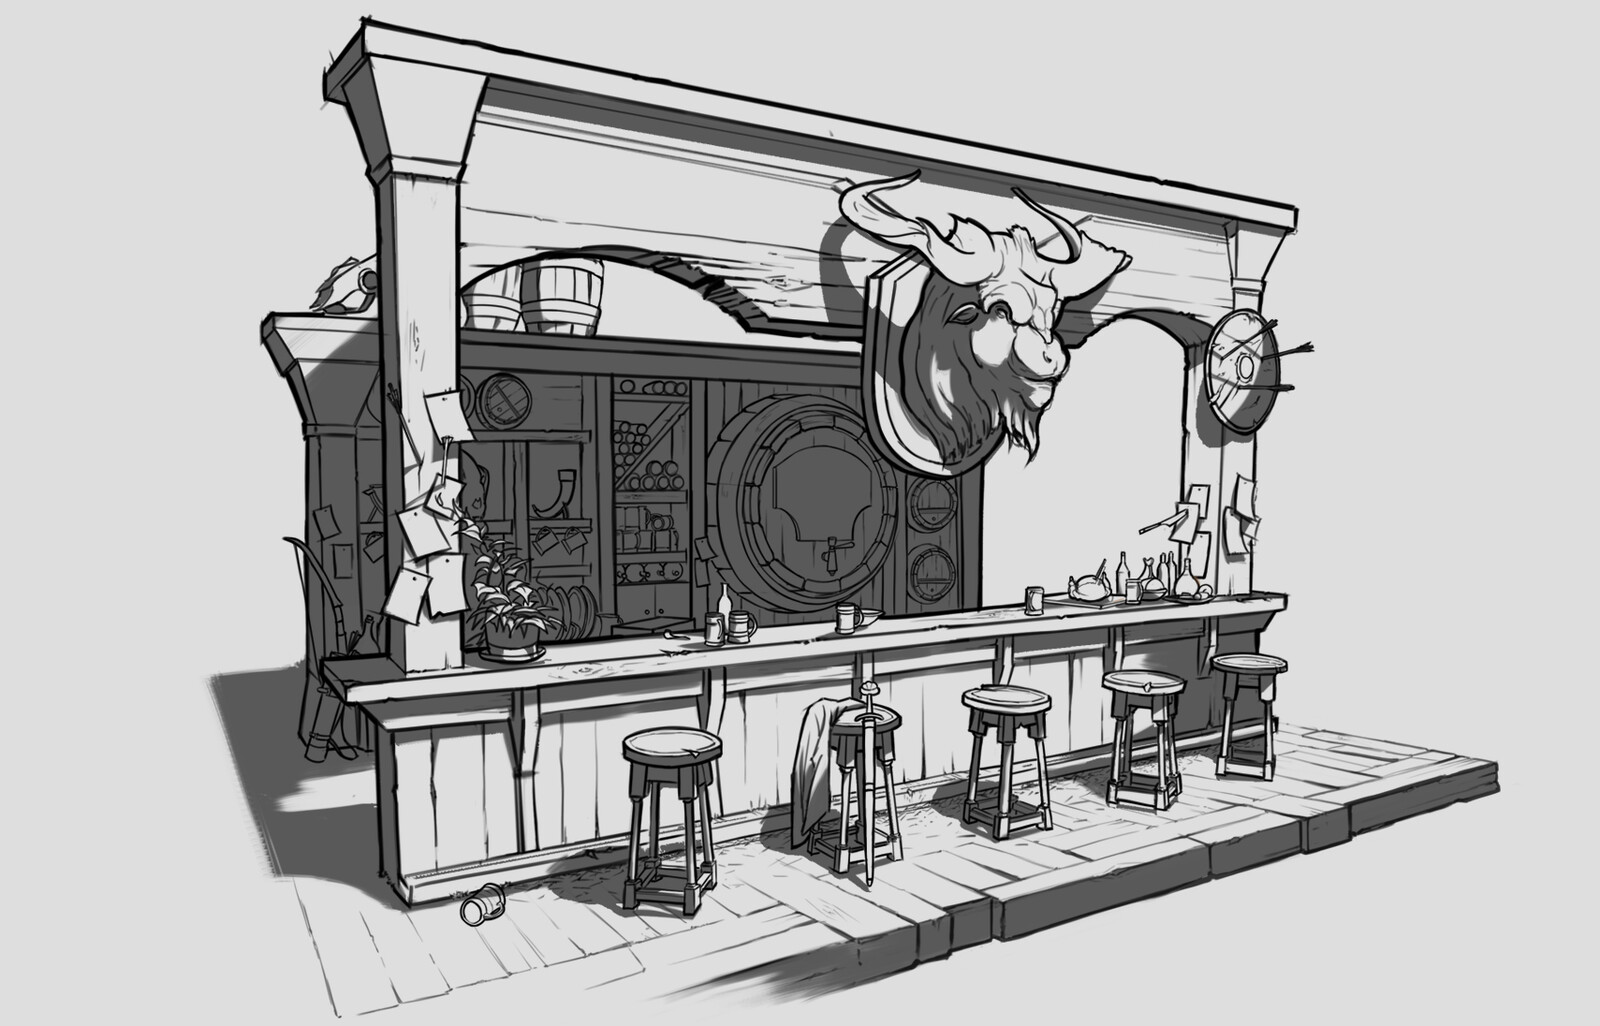 The initial sketch block out of the bar area.